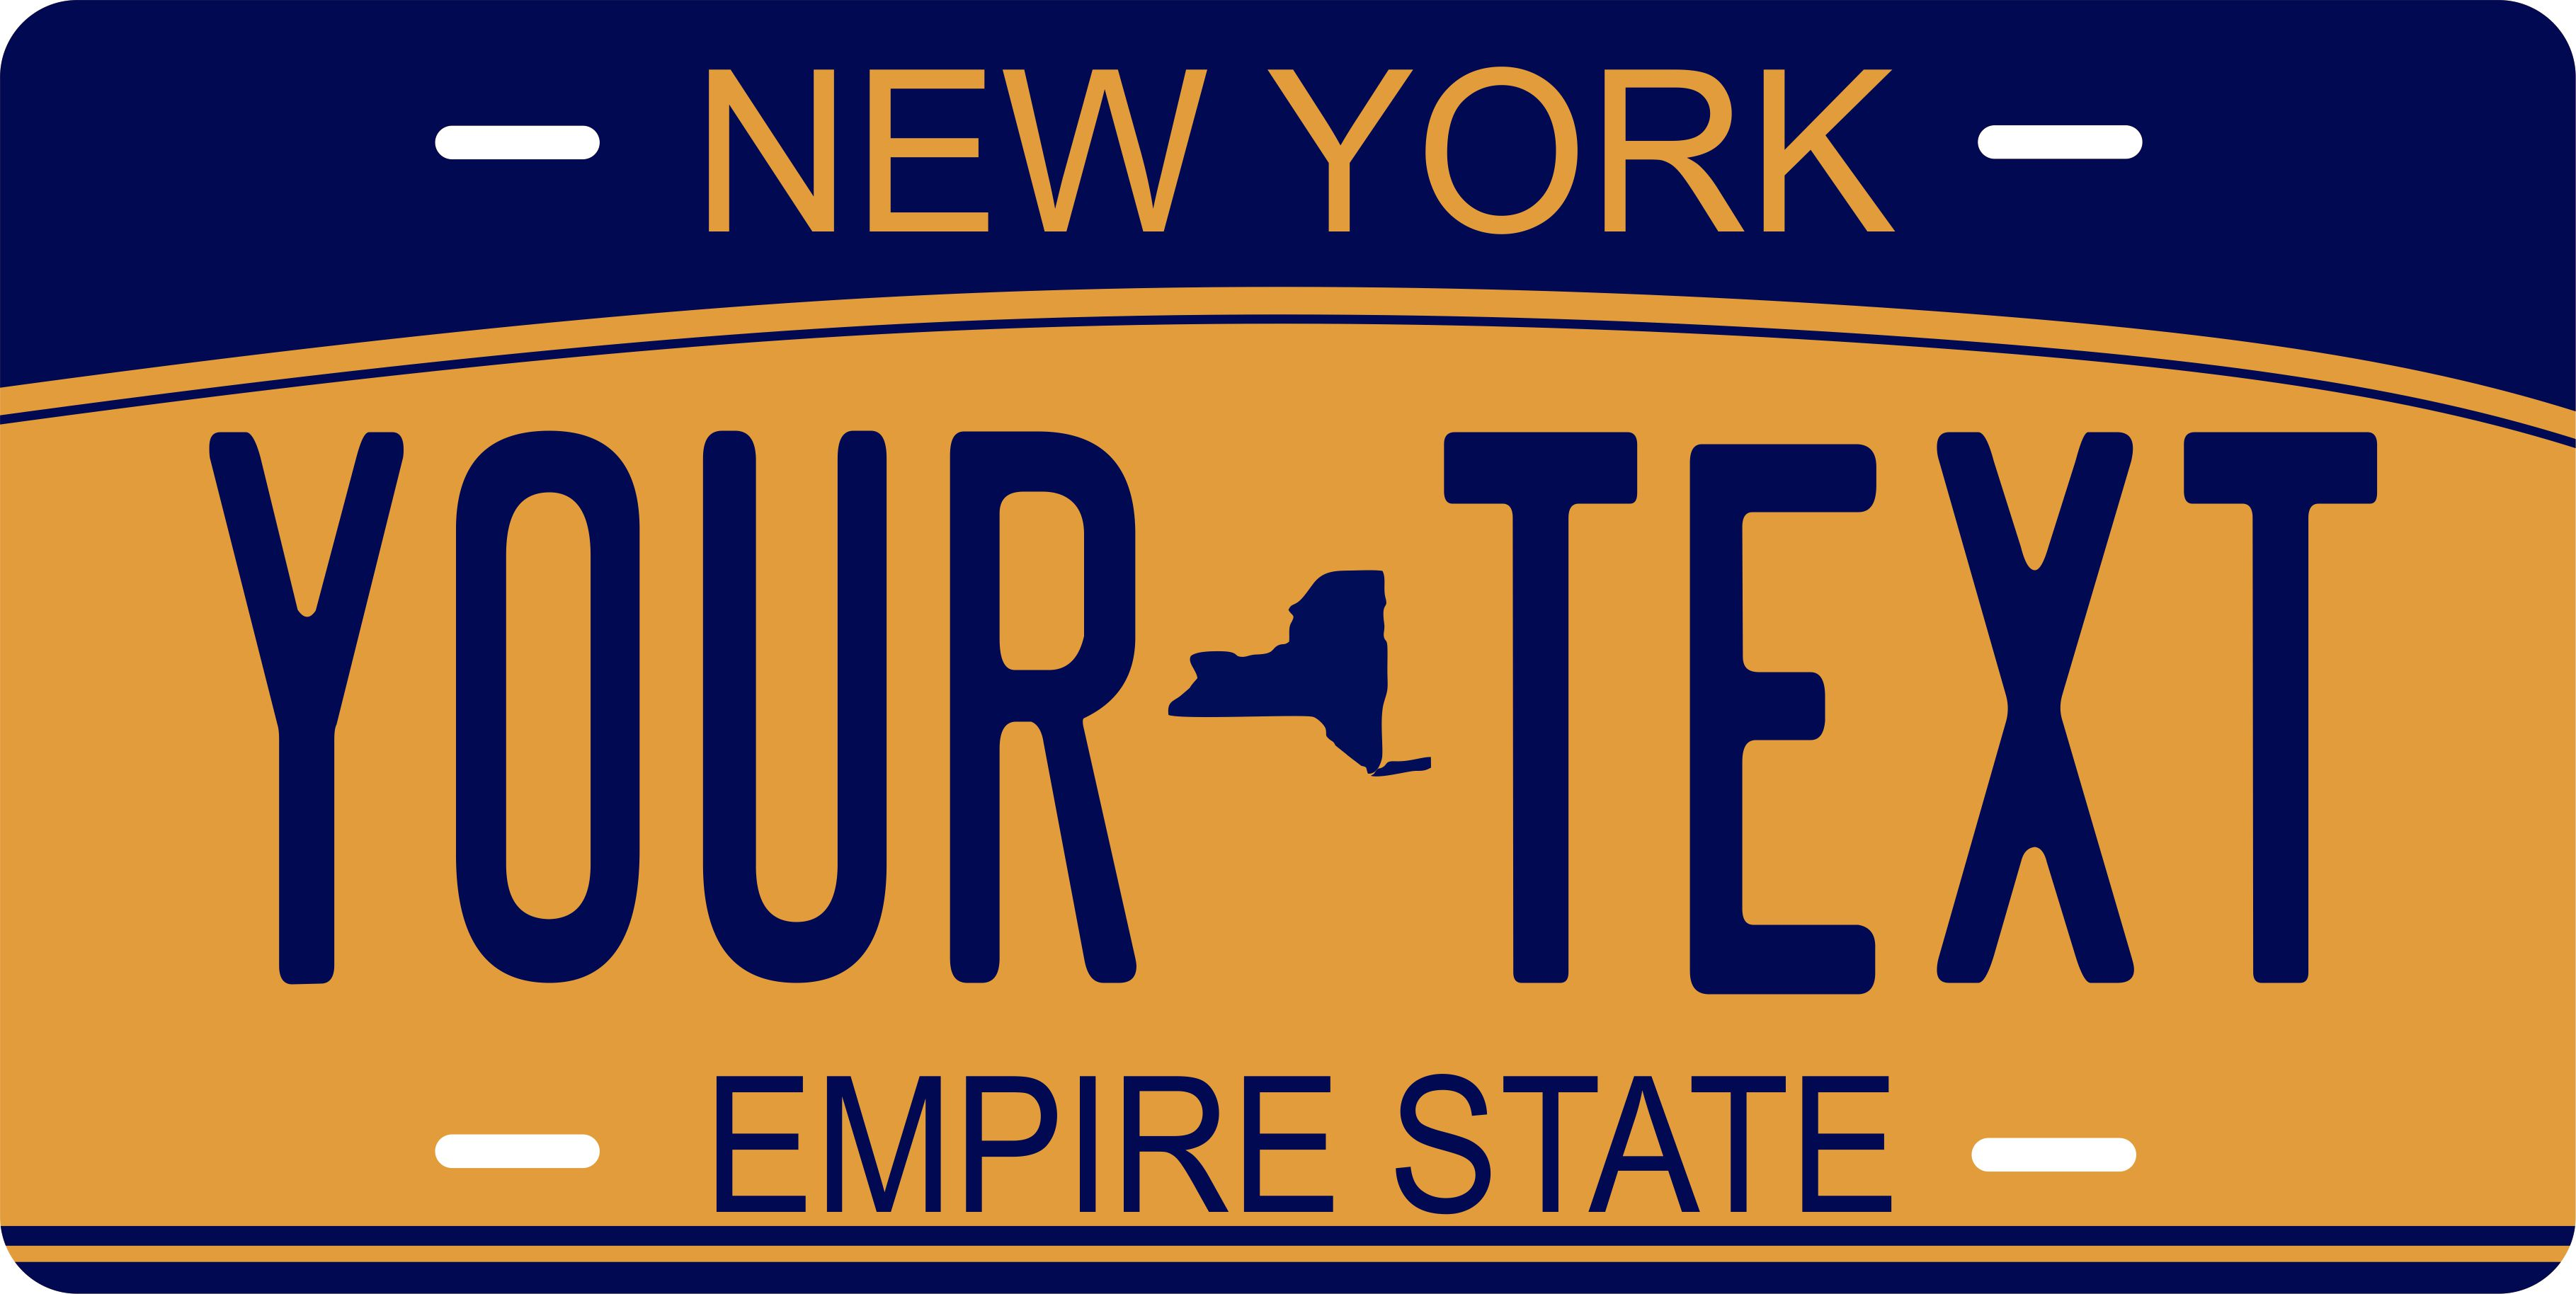 Details about New York 2010 Tag License Plate Personalized Auto Car Custom  VEHICLE OR MOPED